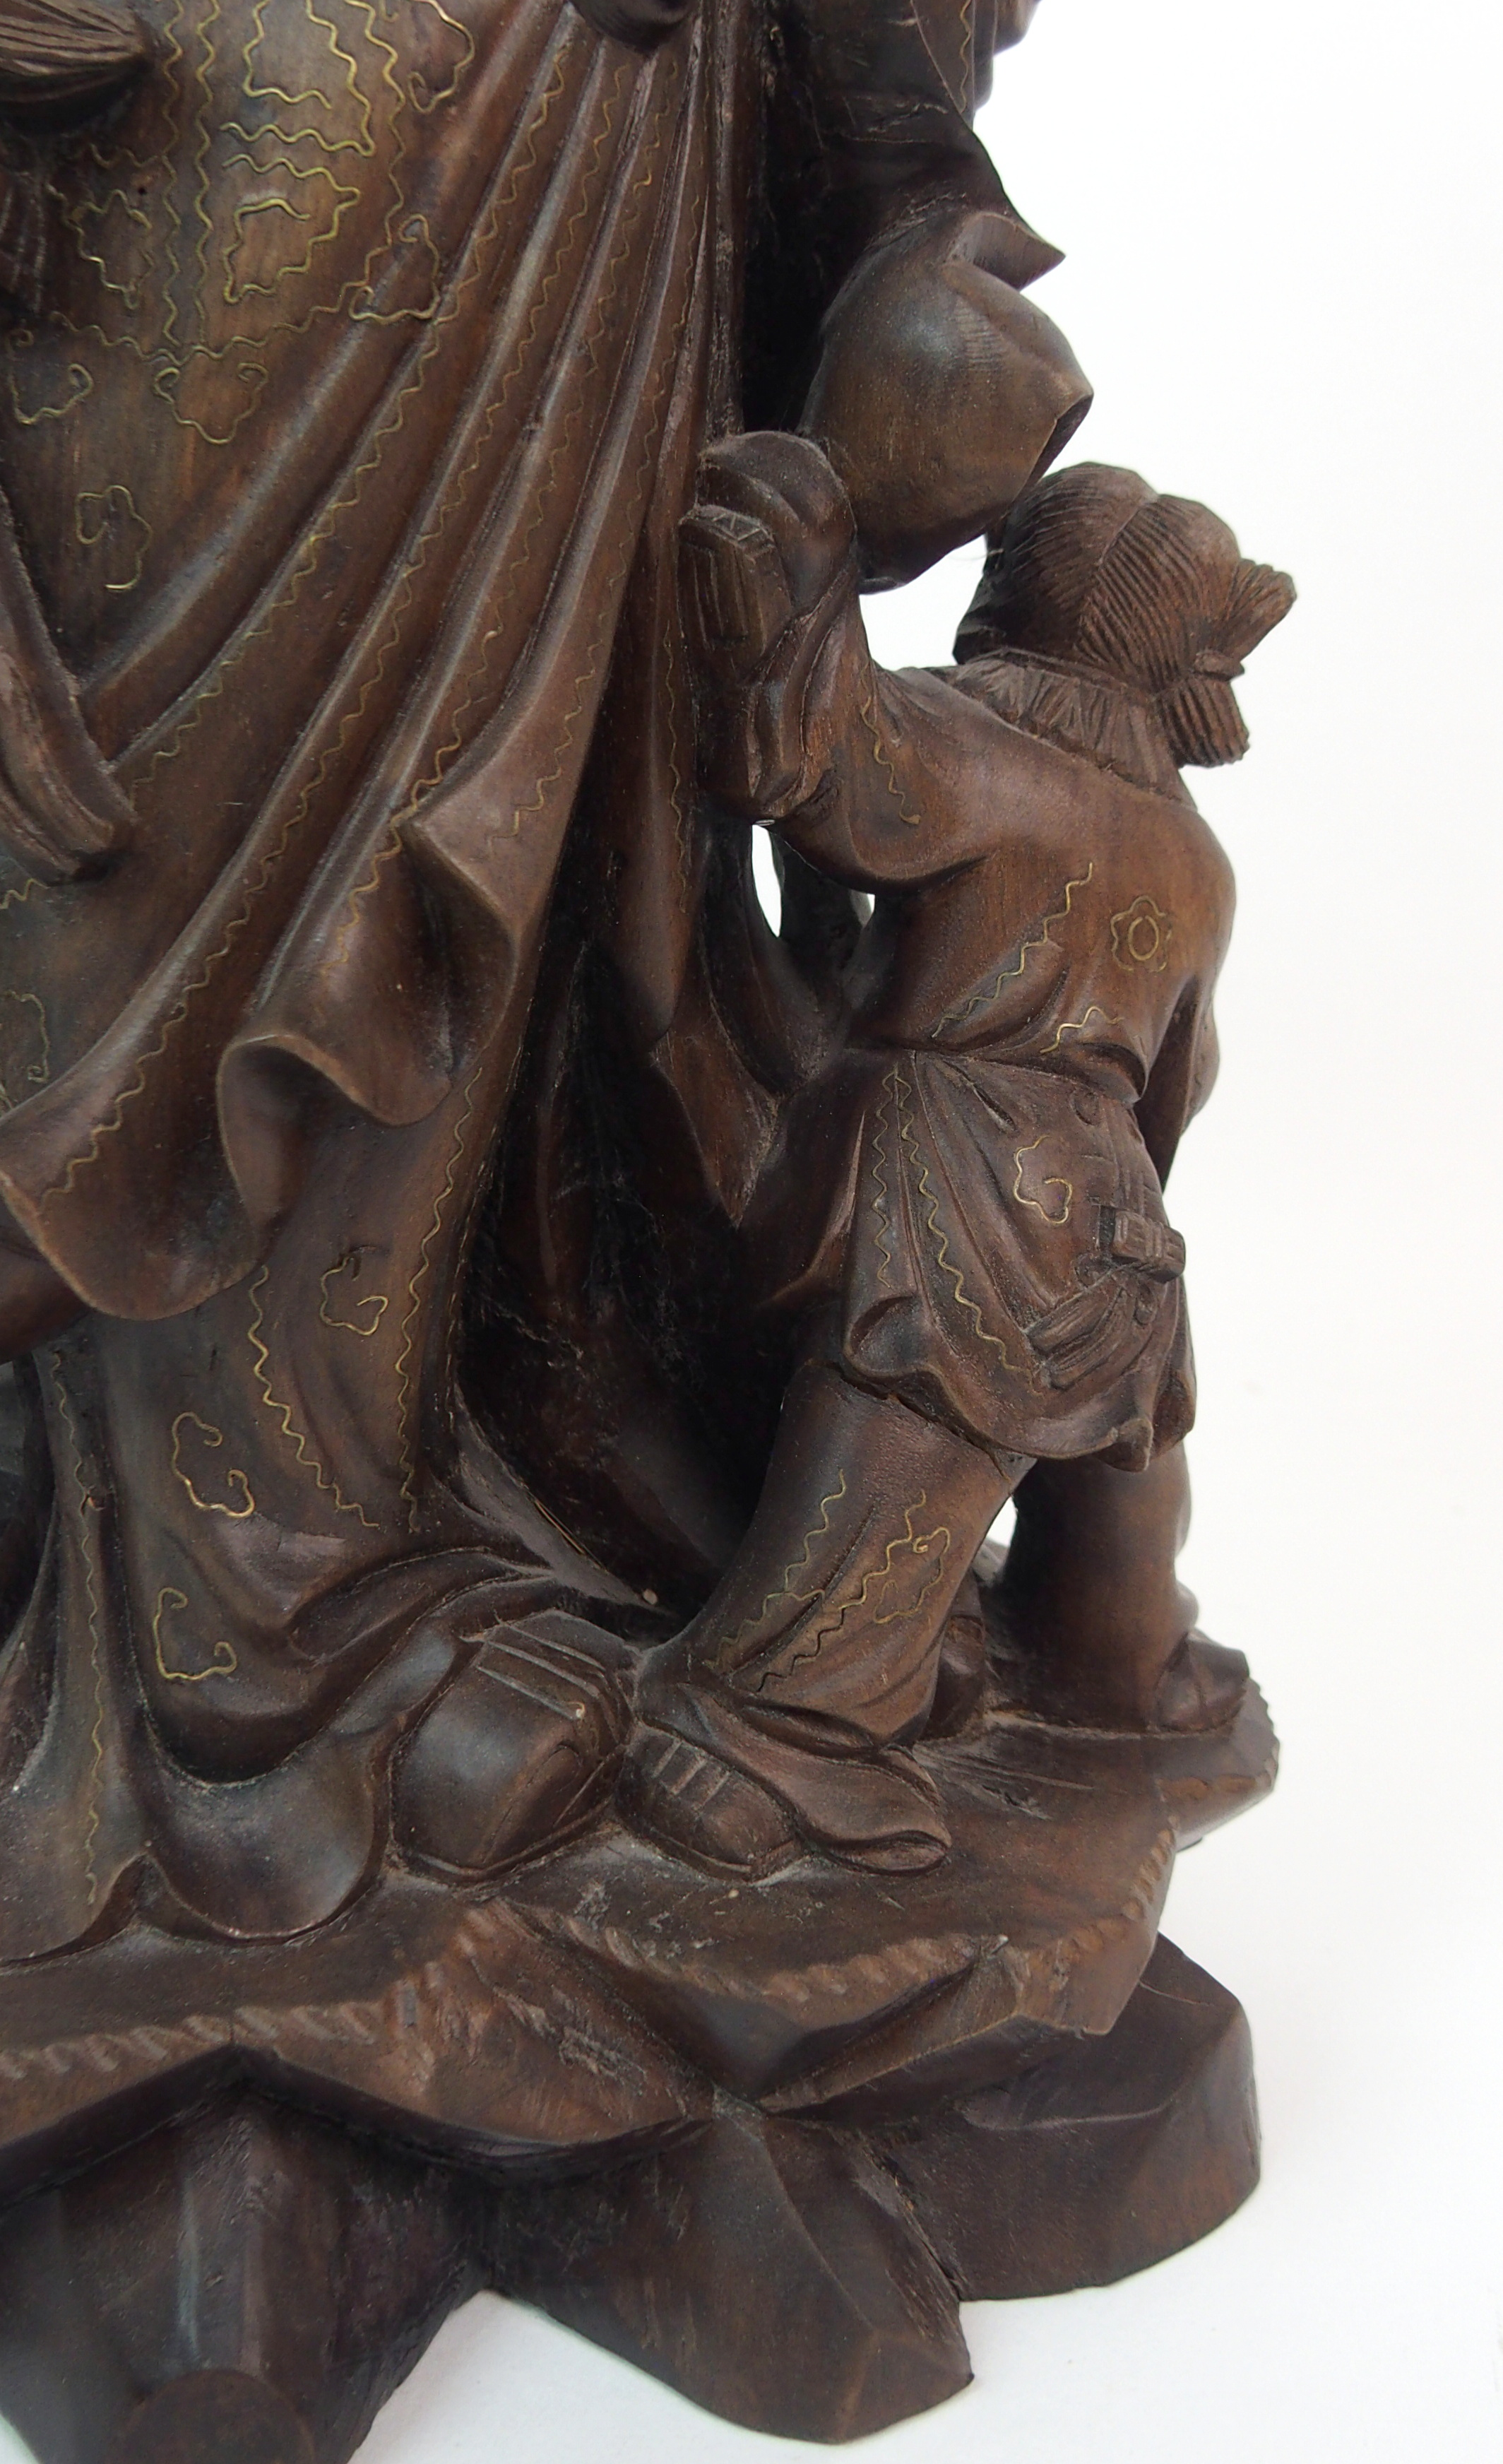 Lot 54 - A HARDWOOD CARVING OF A SAGE AND ATTENDANTS standing with staff, fruit and deer at his feet on a